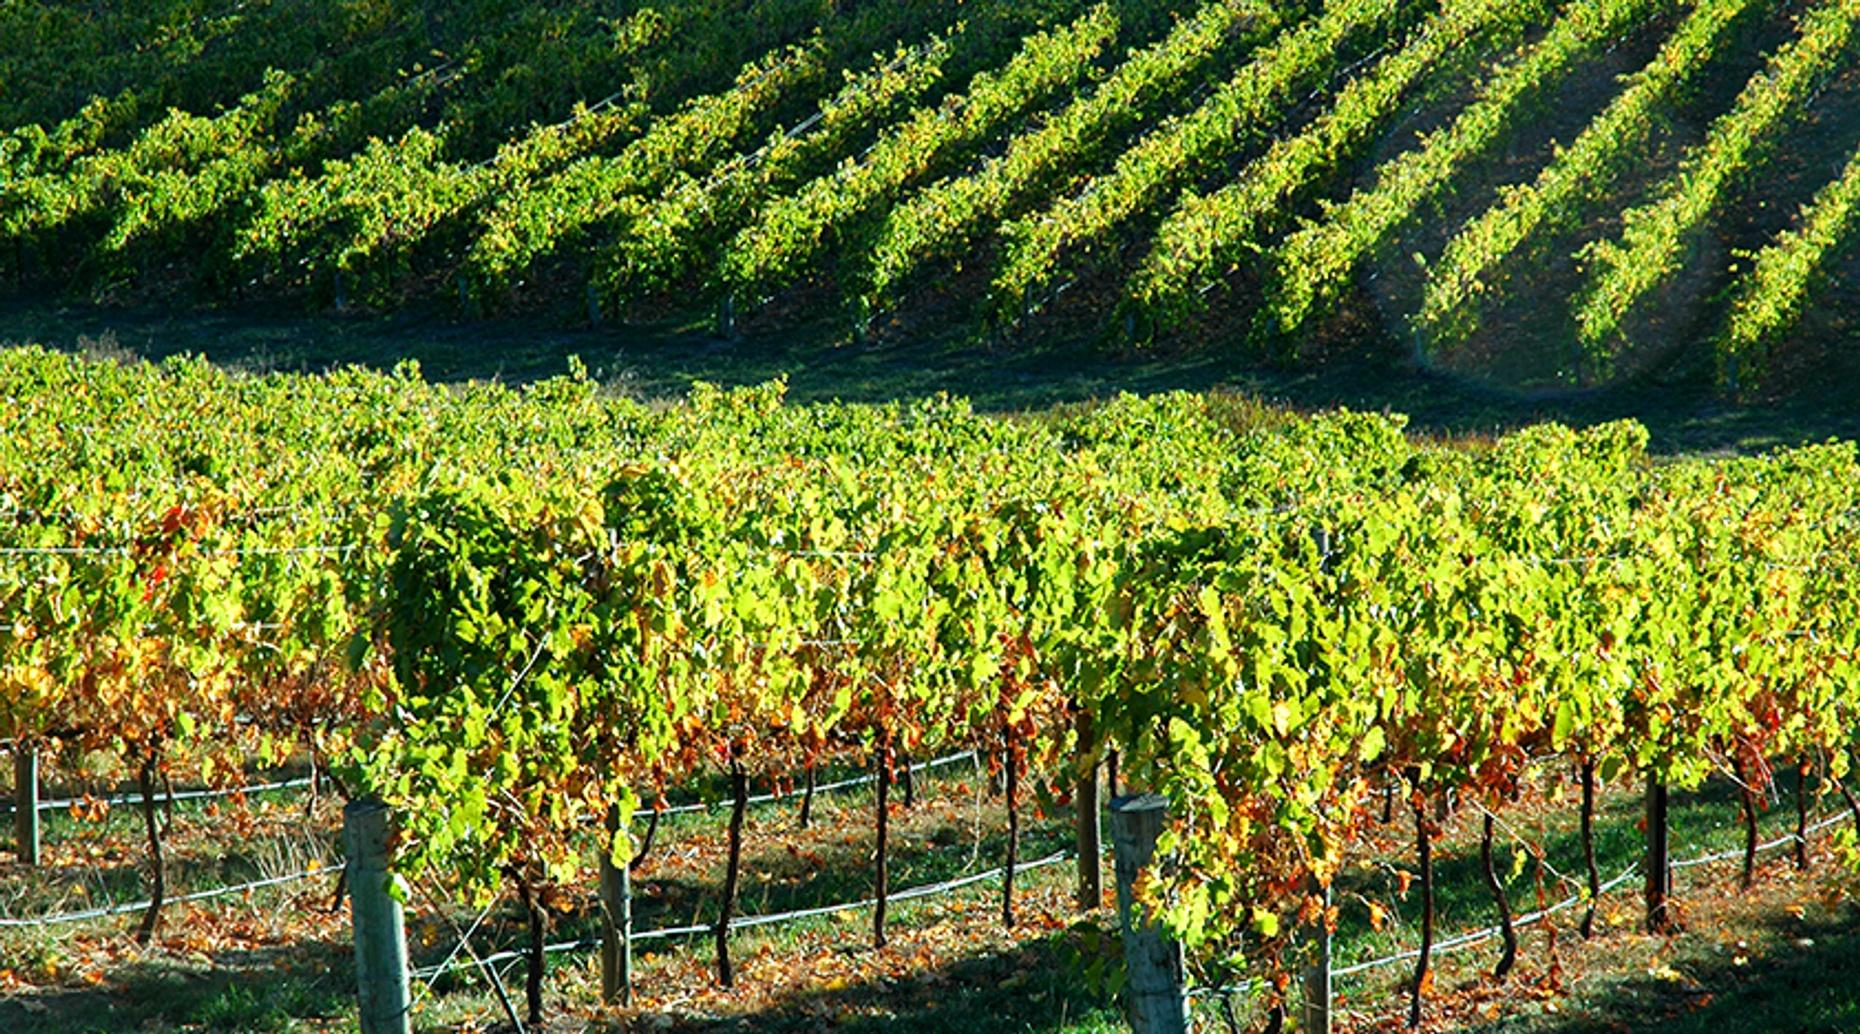 Tour of Three Wineries on Horseback in Temecula